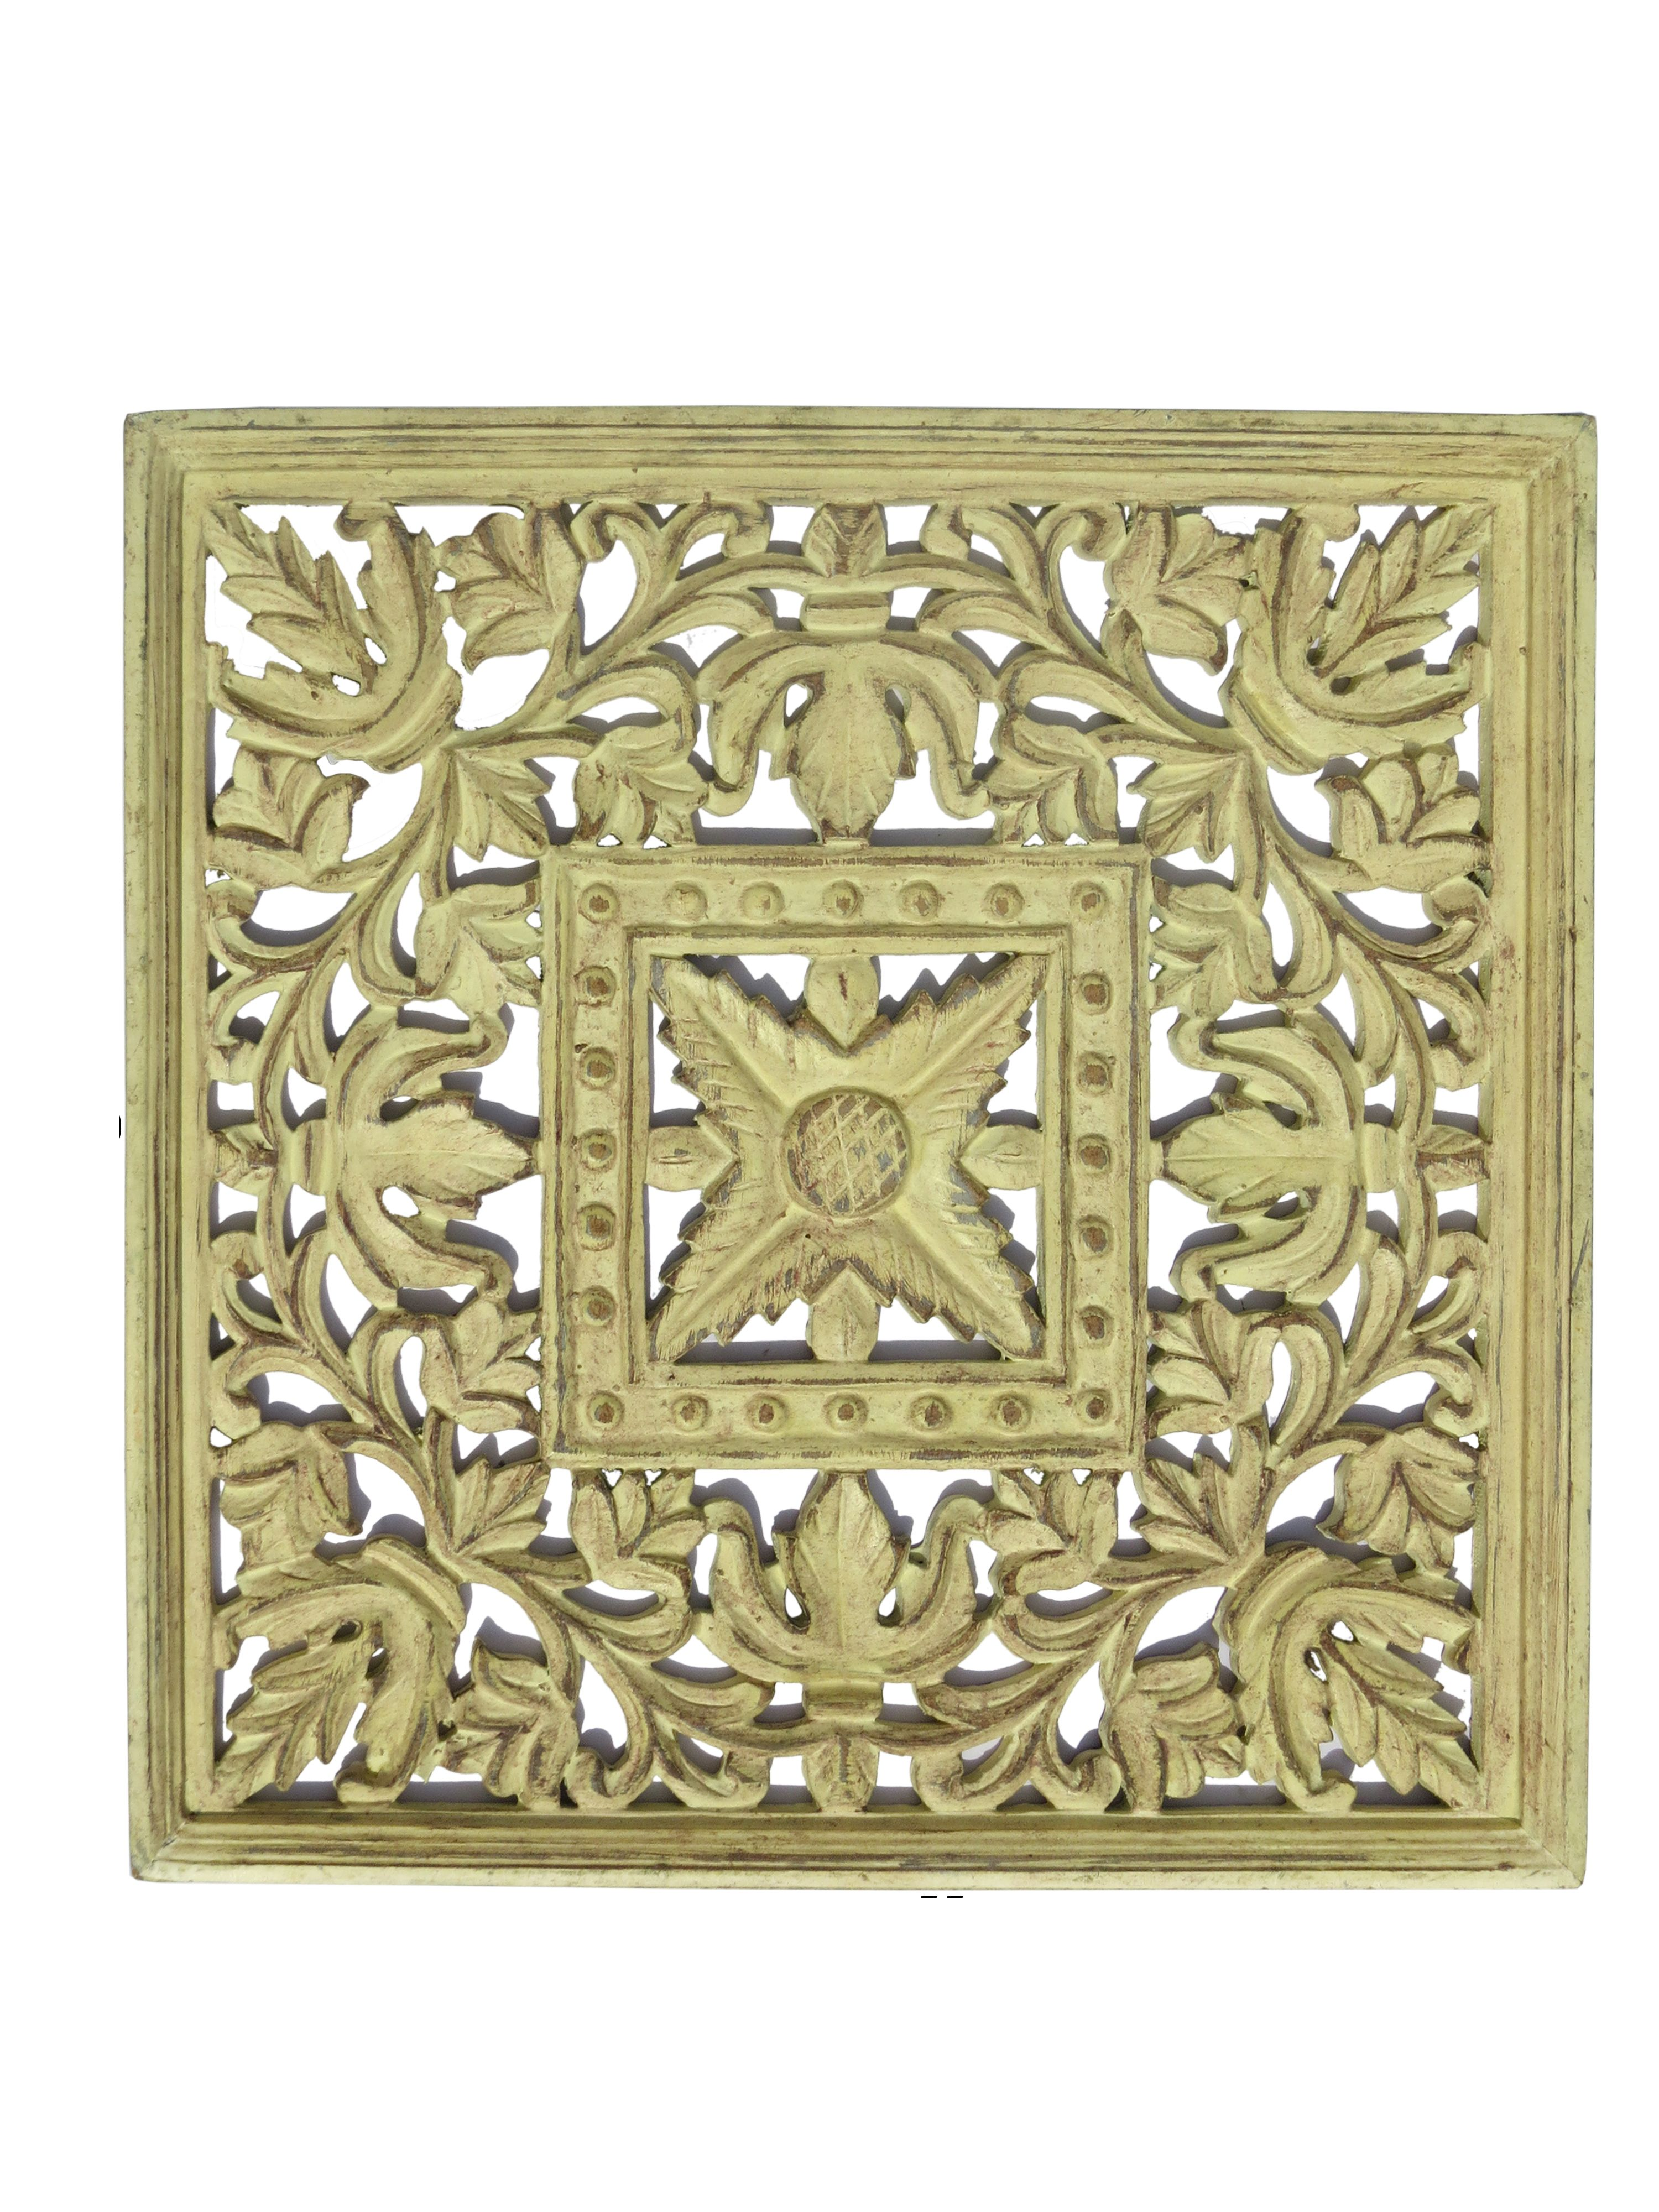 Mdf Carved Panel Design In Cream And Brown Antique Finish Reliable Durable Indian Authentic Handicrafts Wi Wooden Wall Panels Hand Carved Wood Panel Design